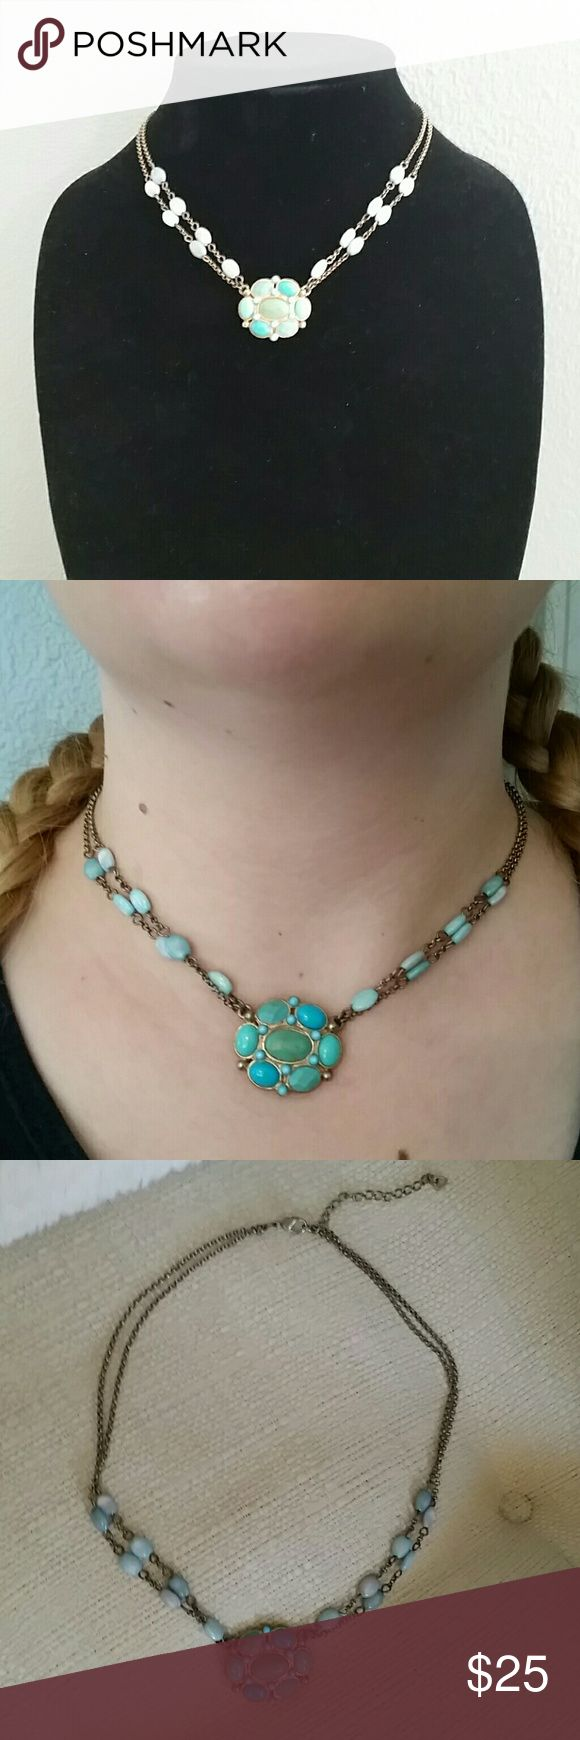 Amazing Turquoise Choker. Turquoise Adjustable Choker. So Chic and Stylish. LC Jewelry Necklaces